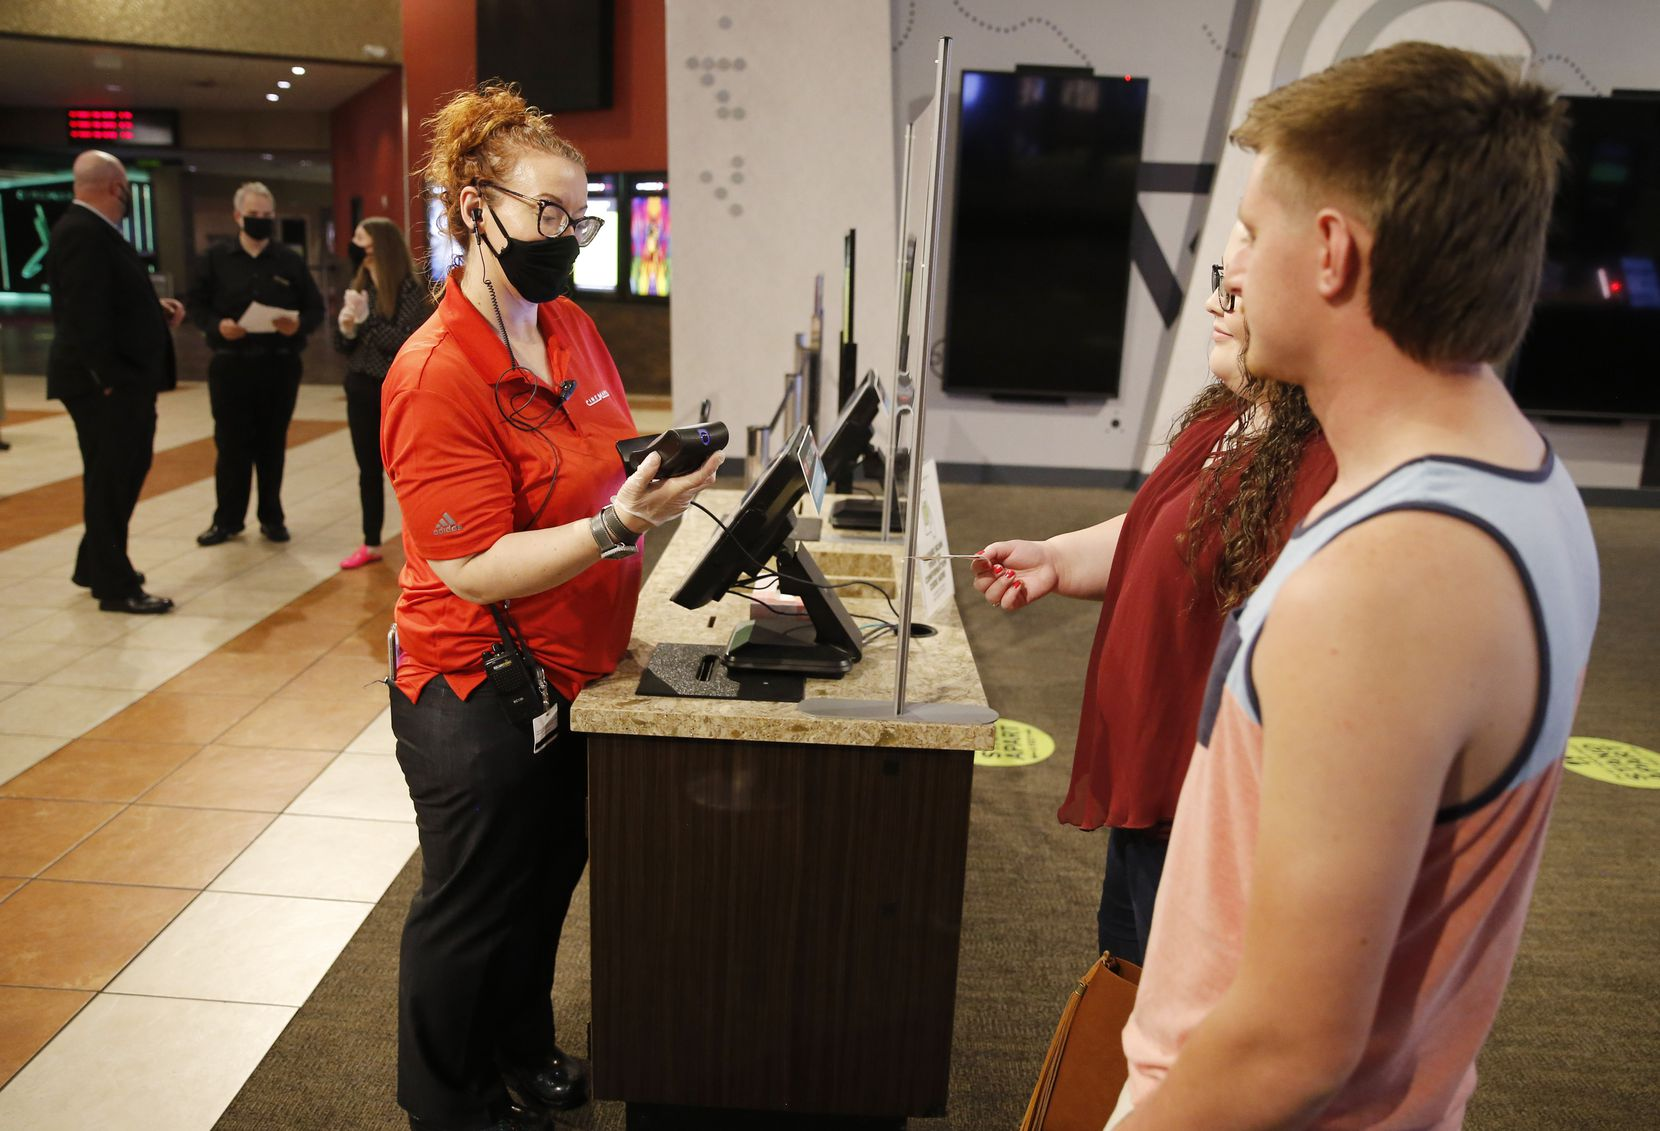 Cinemark's Jennifer Bell (left) scans the tickets of Hannah Potter (center) and Tony Johnson (right), the first customers in the building since the movie theater closed due to the coronavirus pandemic at Cinemark West in Plano, on Friday, June 19, 2020. After being closed for months due to the coronavirus pandemic, the theater reopened Friday. (Vernon Bryant/The Dallas Morning News)